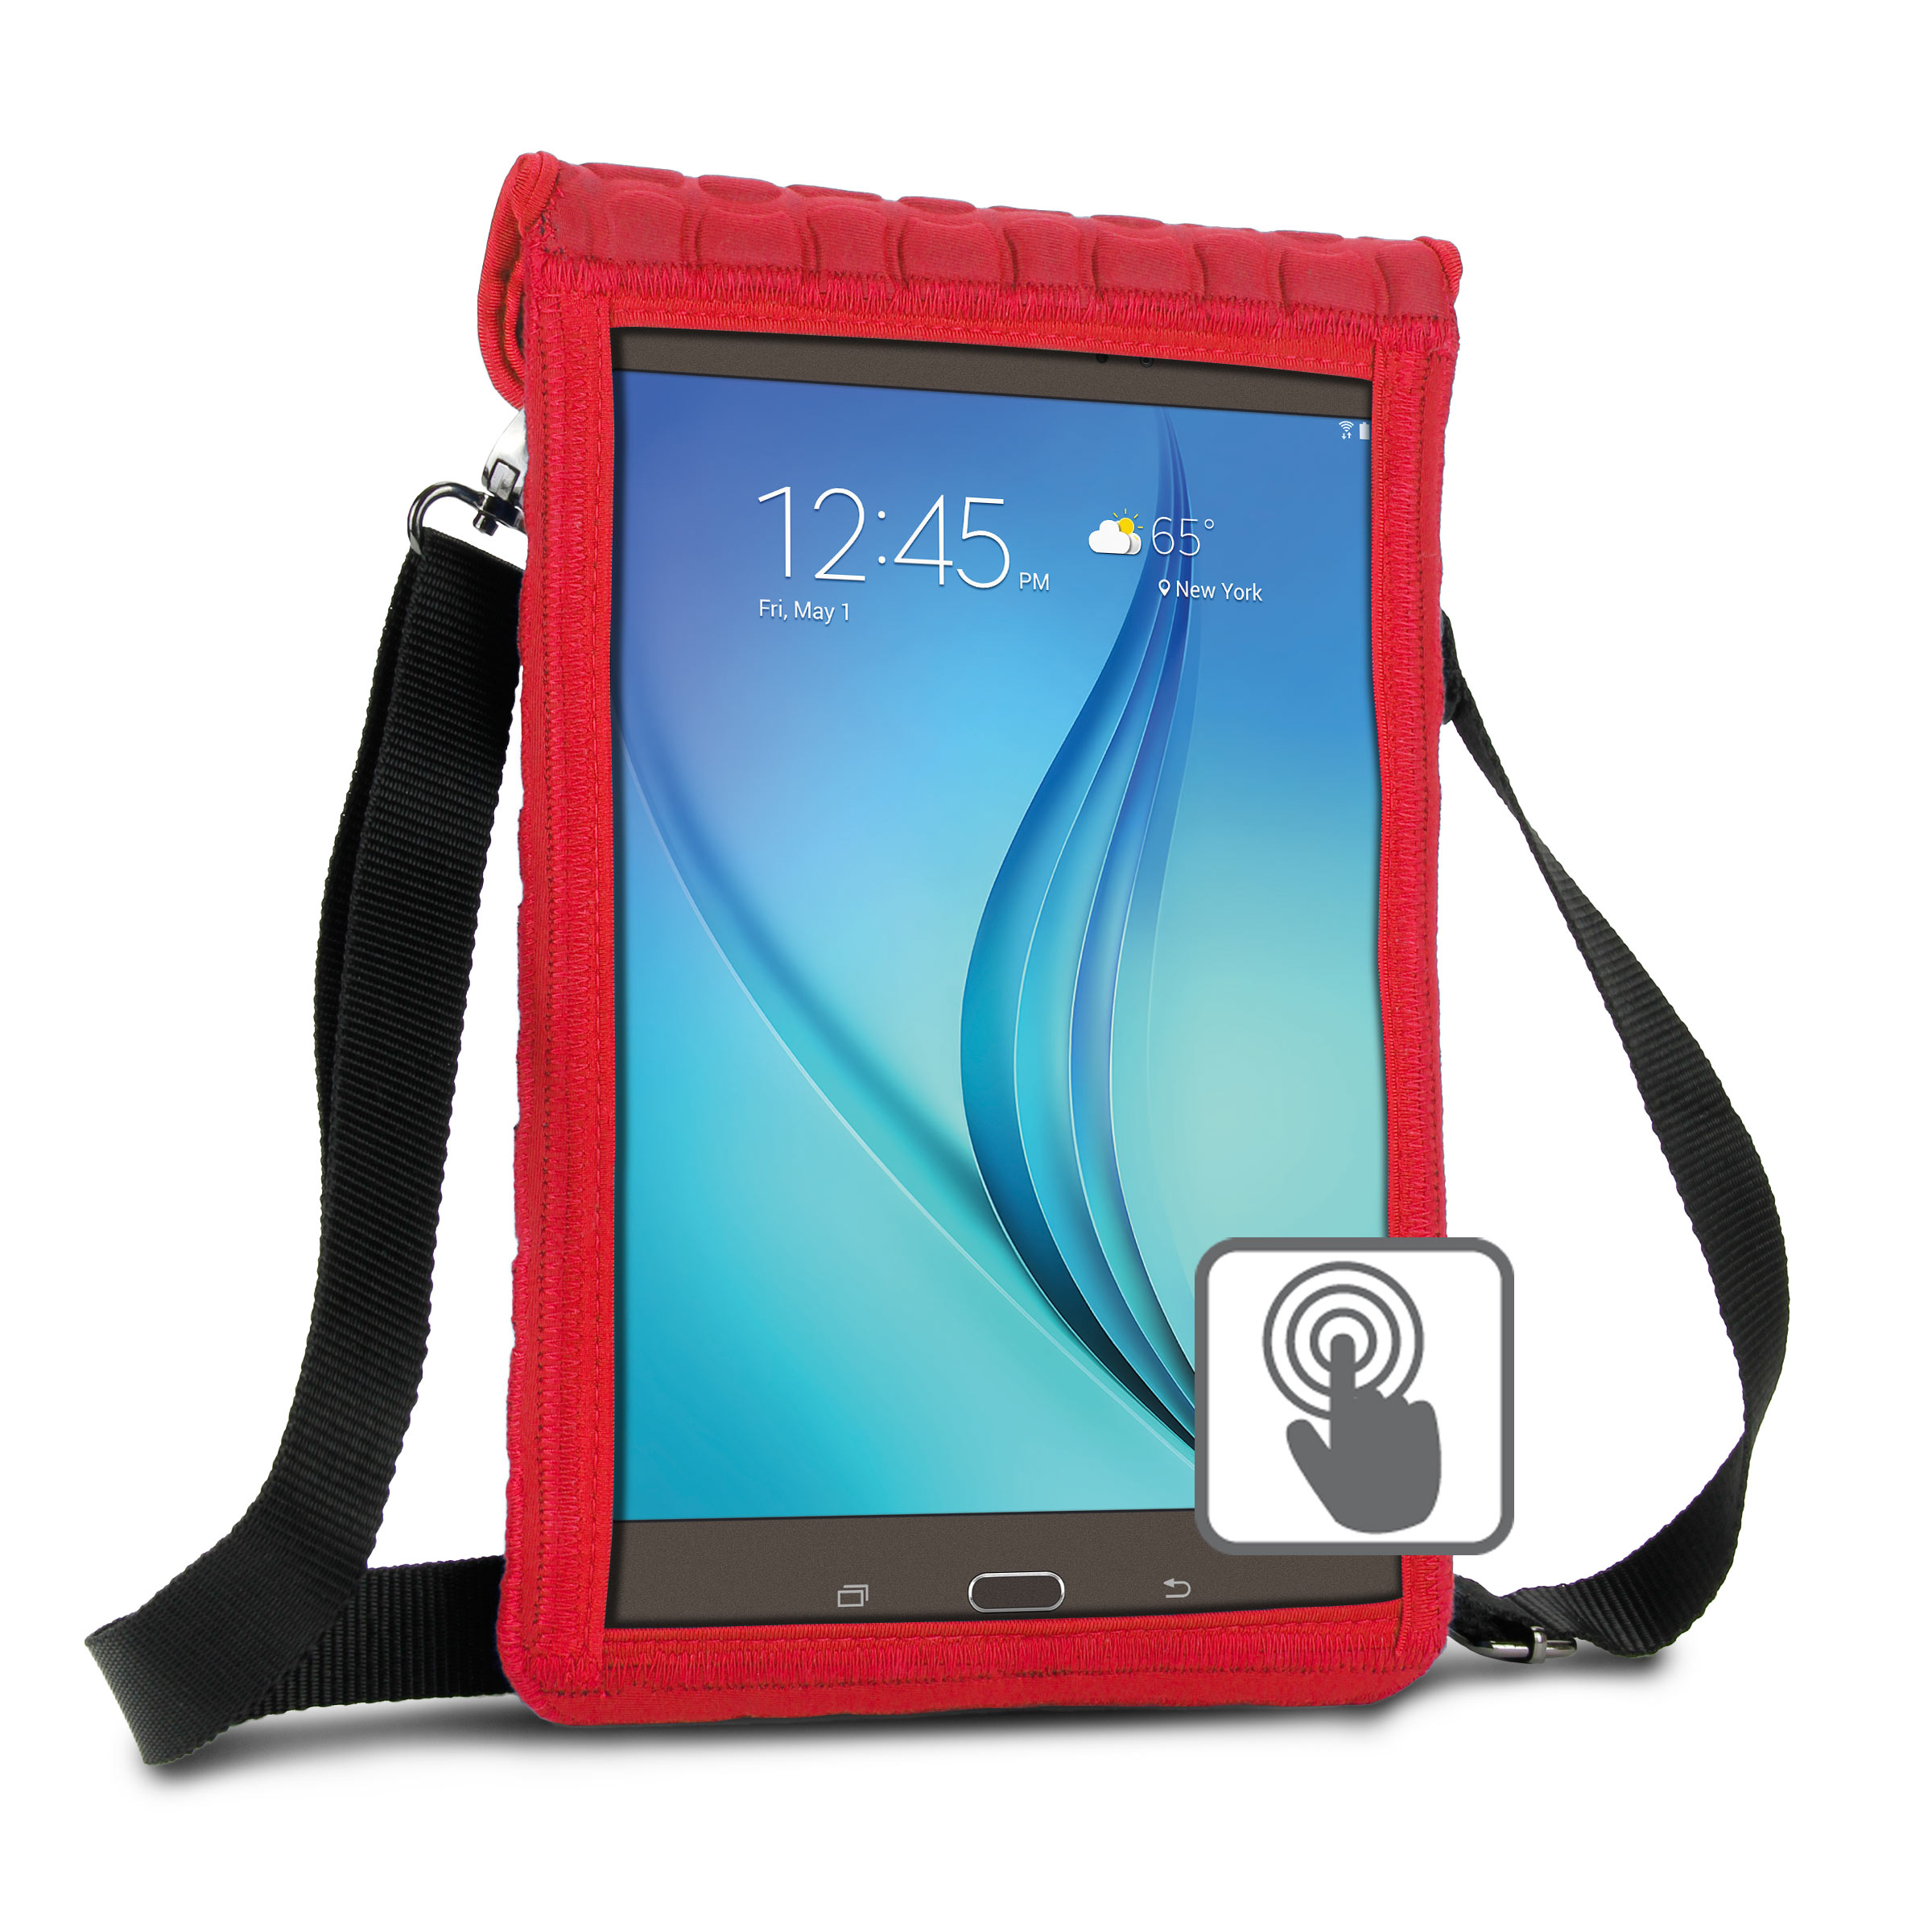 "10 Inch Tablet Case Holder Neoprene Sleeve Cover by USA Gear (Red) Built-in Screen Protector & Carry Strap - Fits Samsung Galaxy Tab A 10.1, Insignia FLEX 10.1, Acer ICONIA ONE 10, more 10"" Tablets"